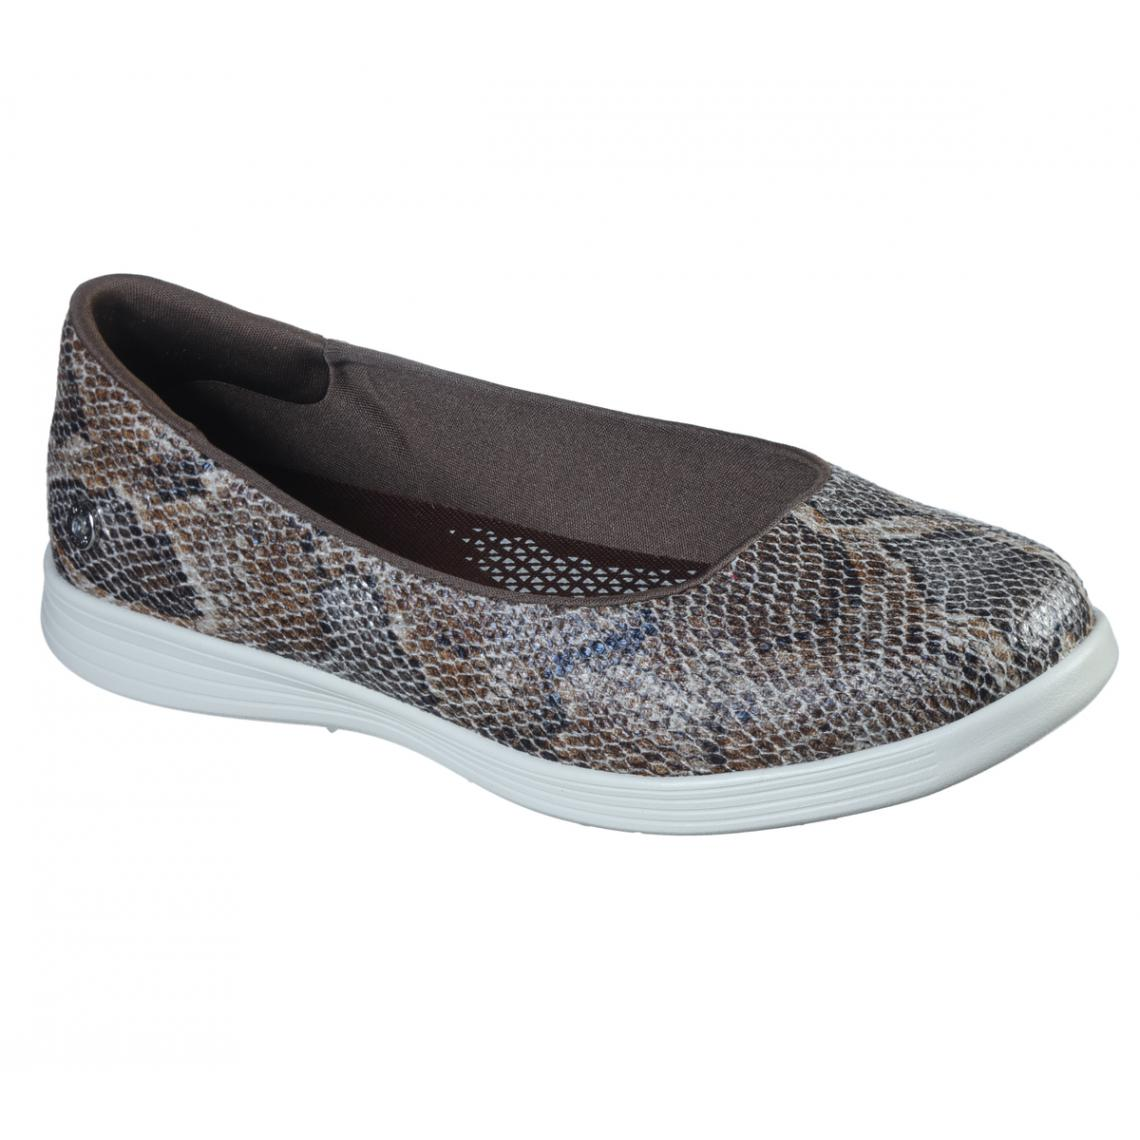 Promo : Baskets Basses Femme Marron - Skechers - Modalova